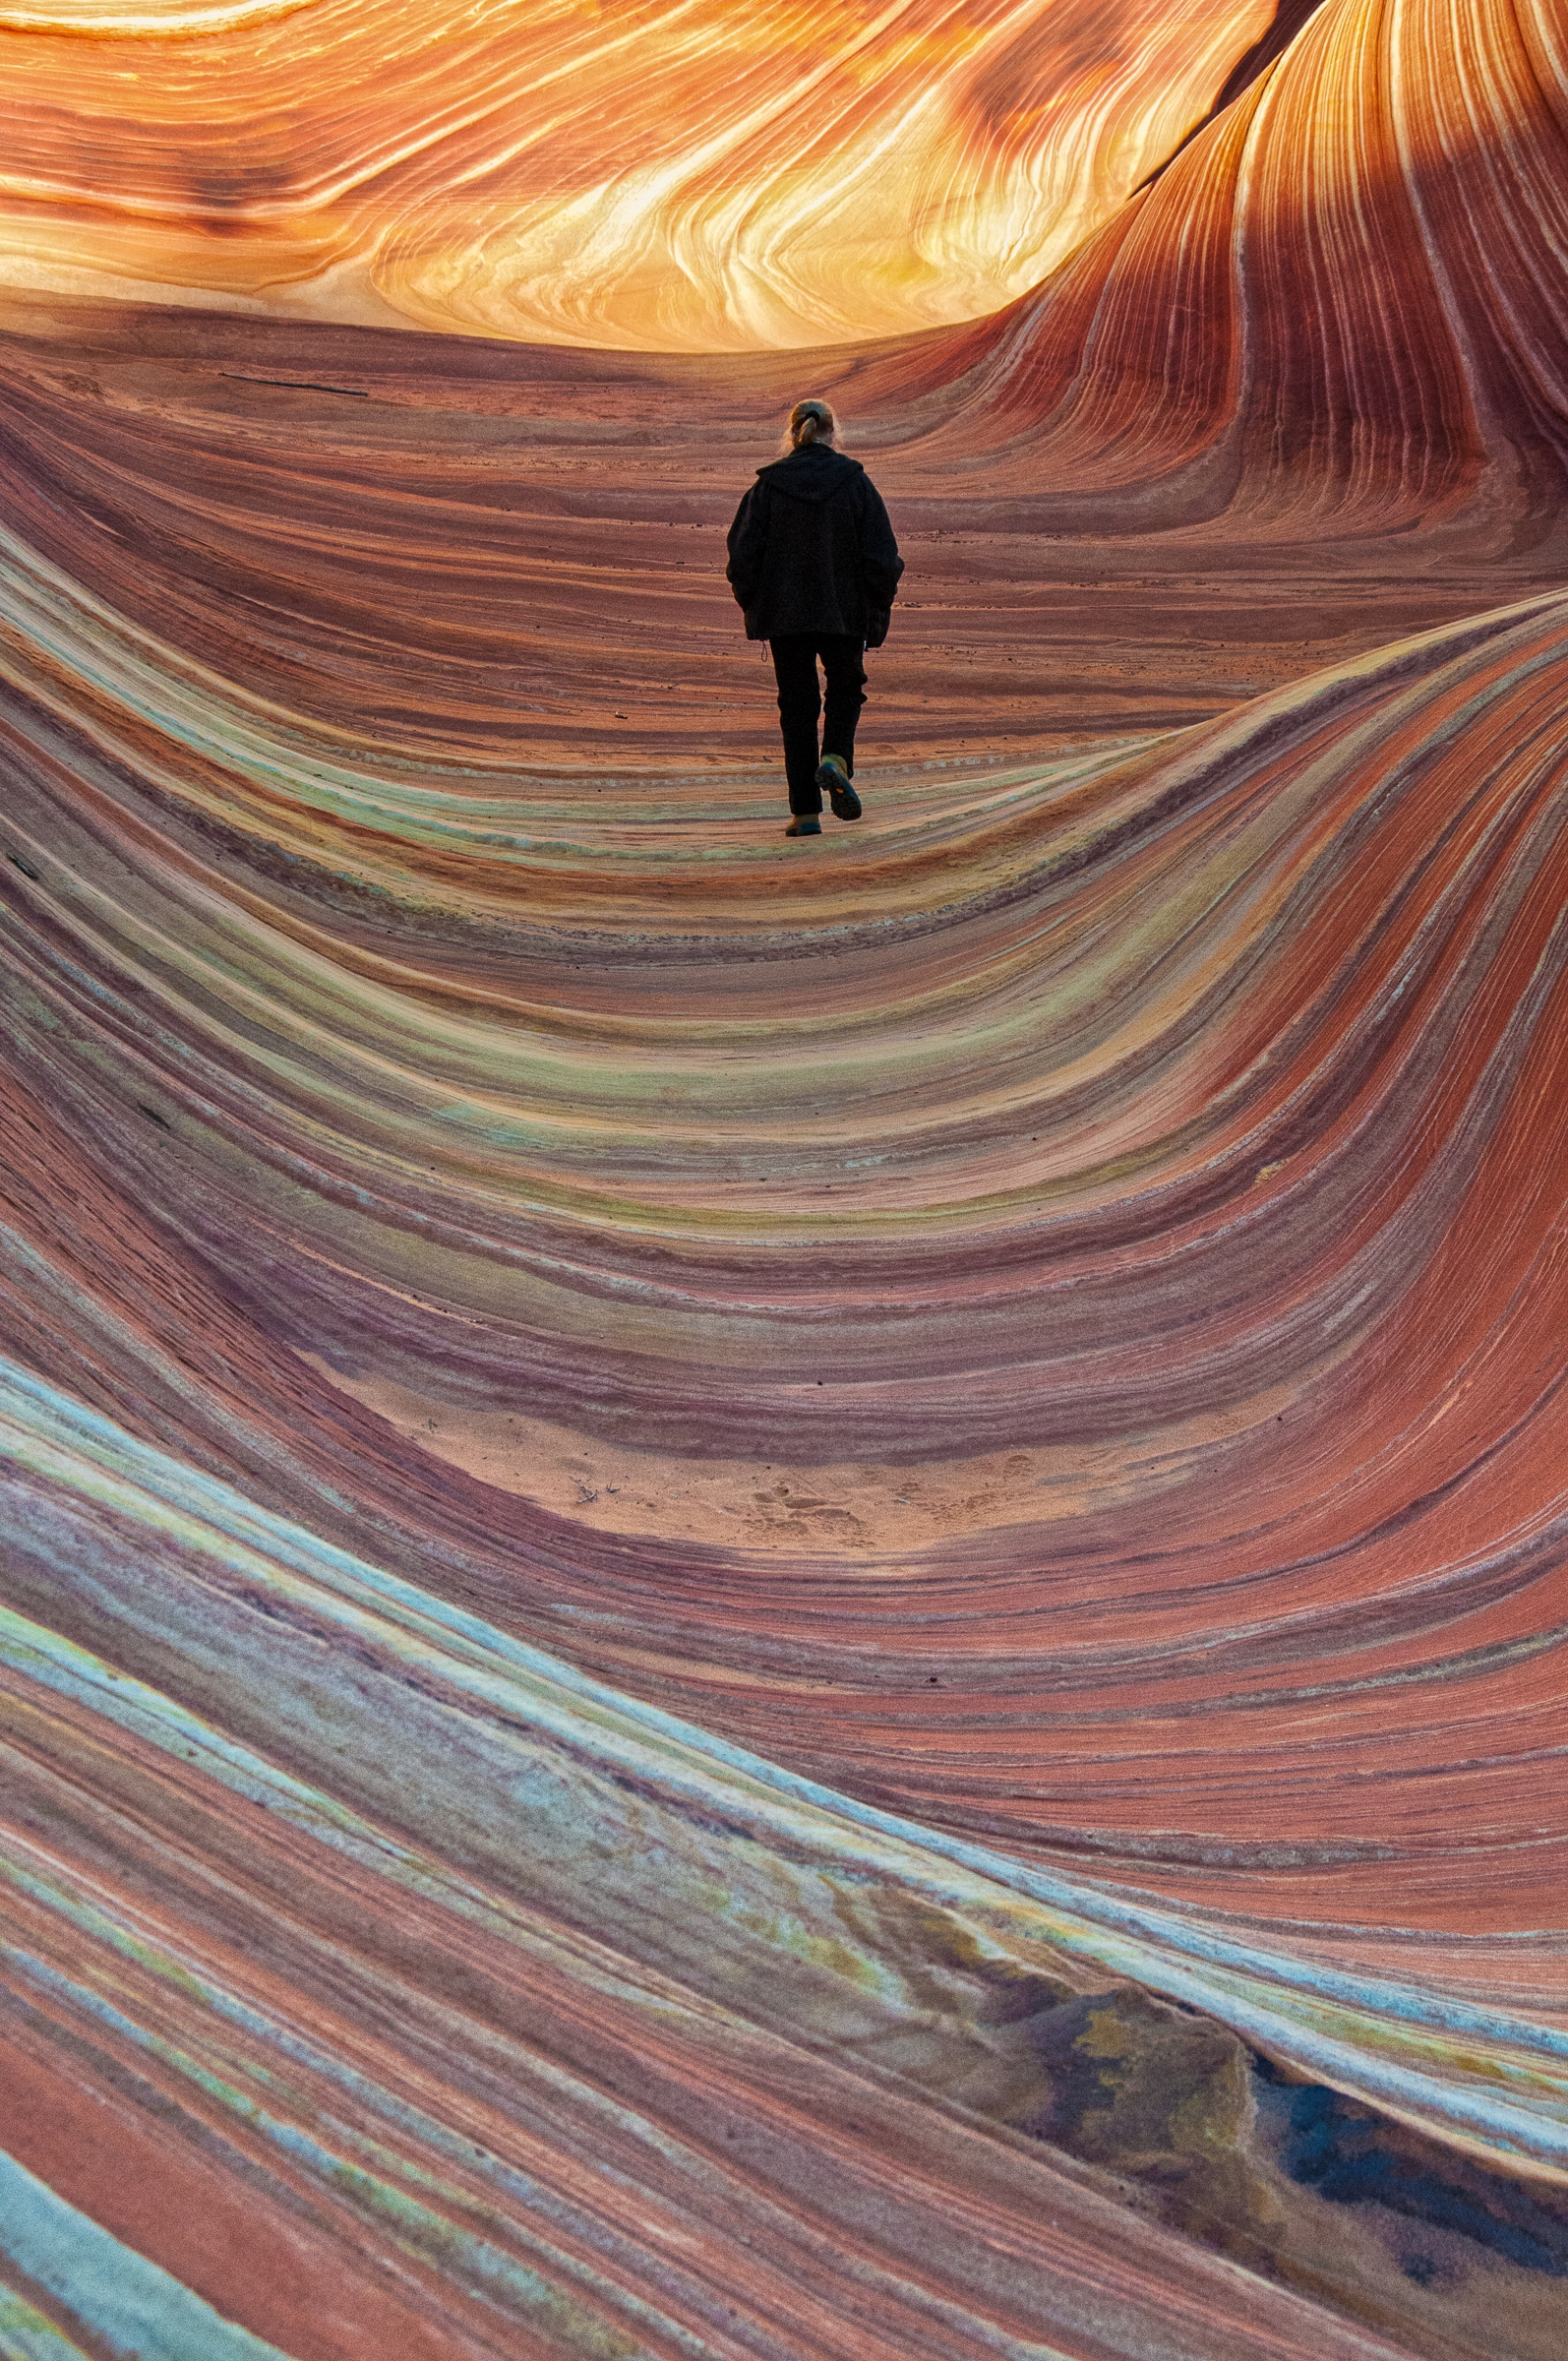 Woman walking through the Wave in the North Coyote Butte area of Vermillion CLiffs National Monument.